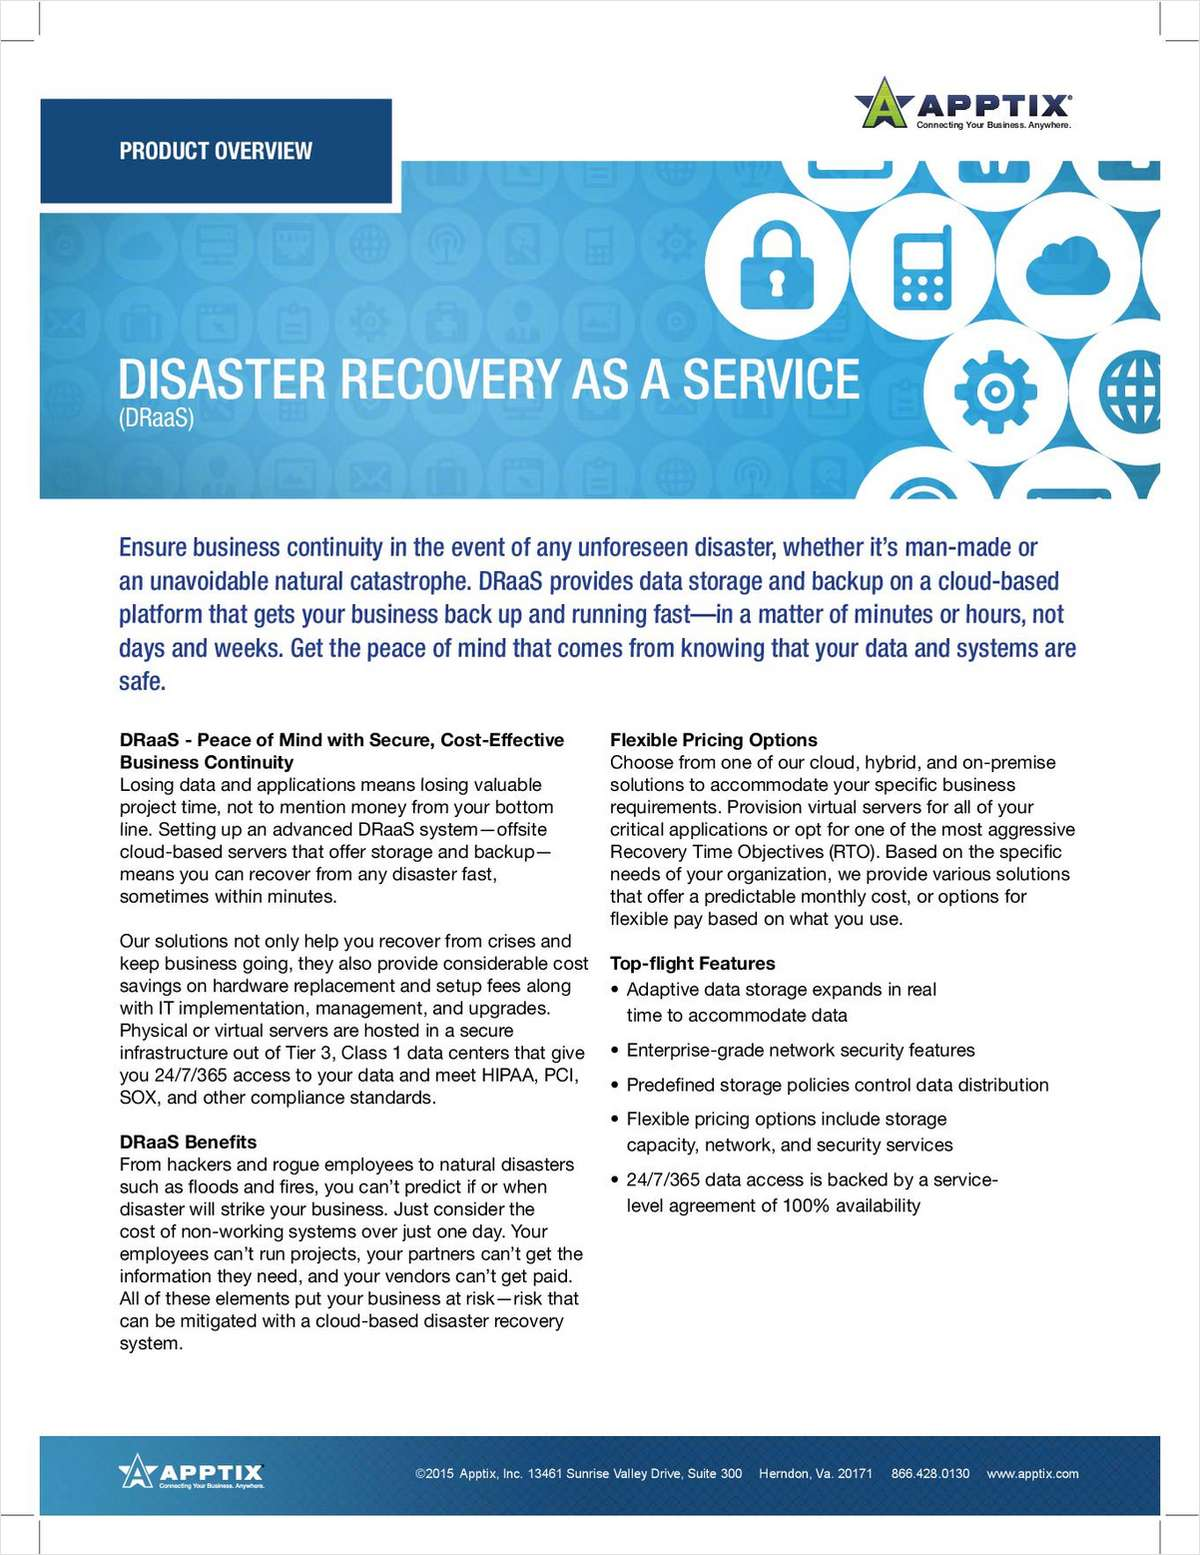 Disaster Recovery as a Service - Peace of Mind with Secure, Cost-Effective Business Continuity